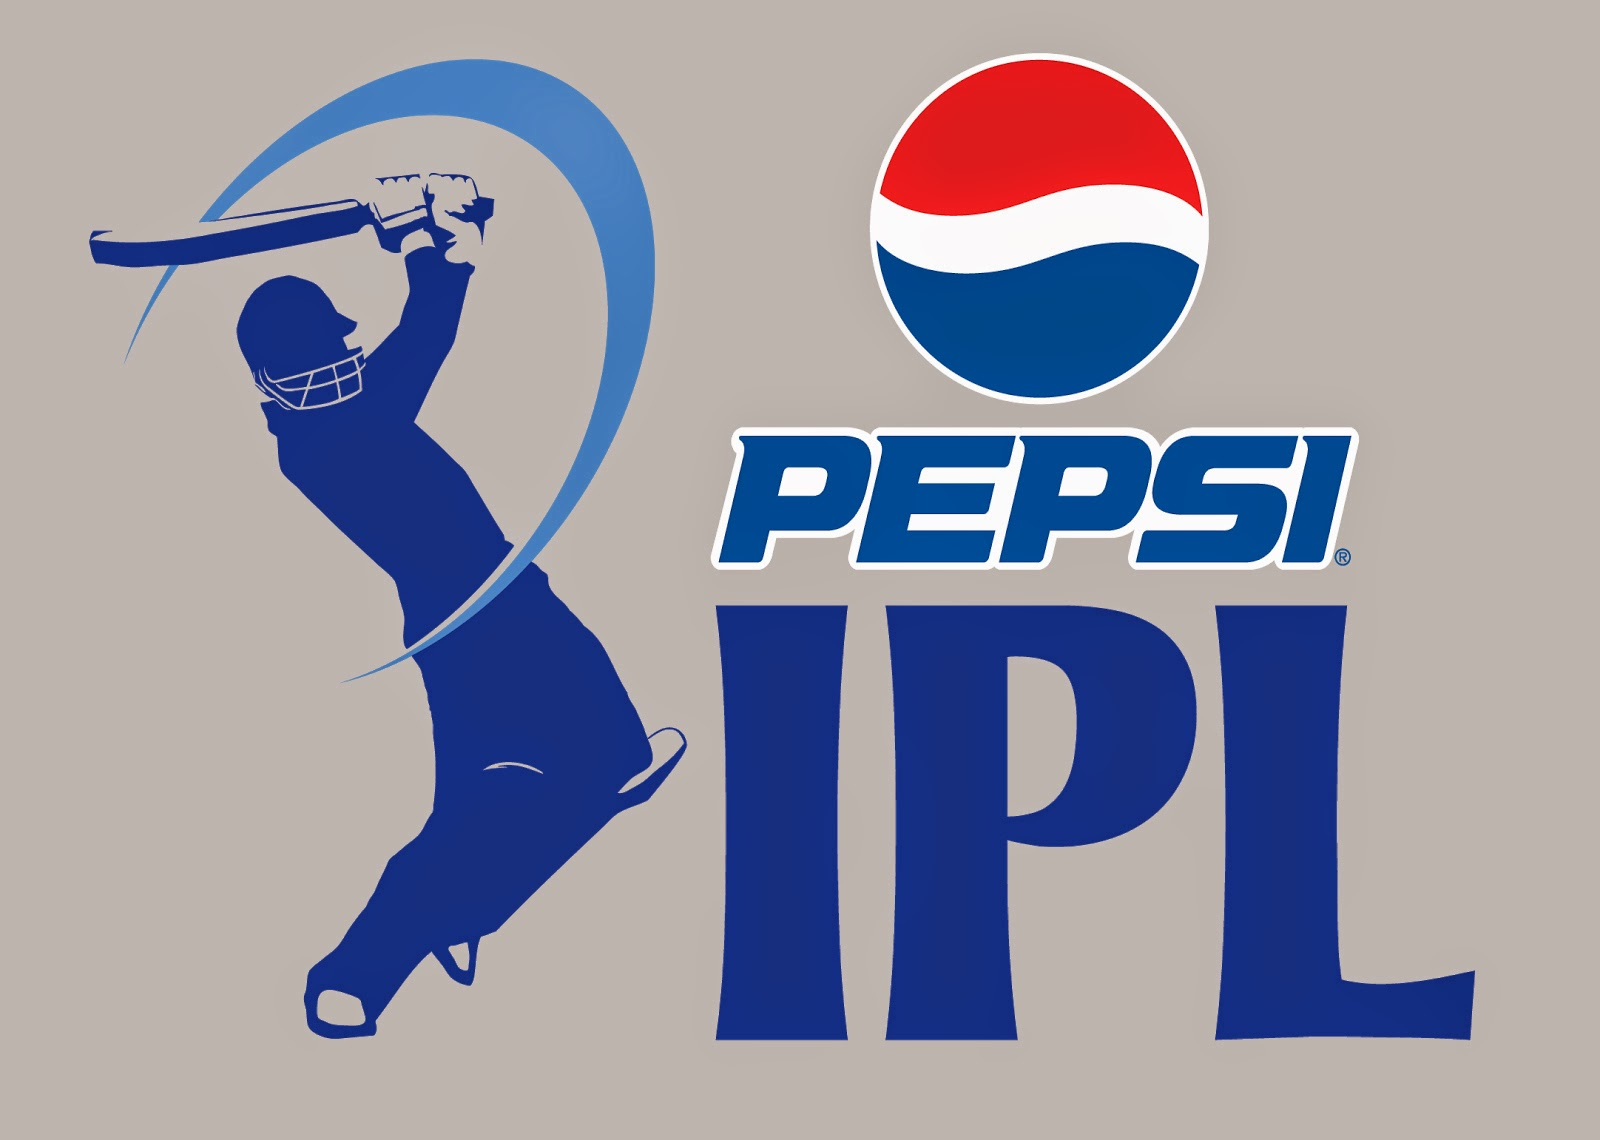 8 teams wins and loss in IPL till now